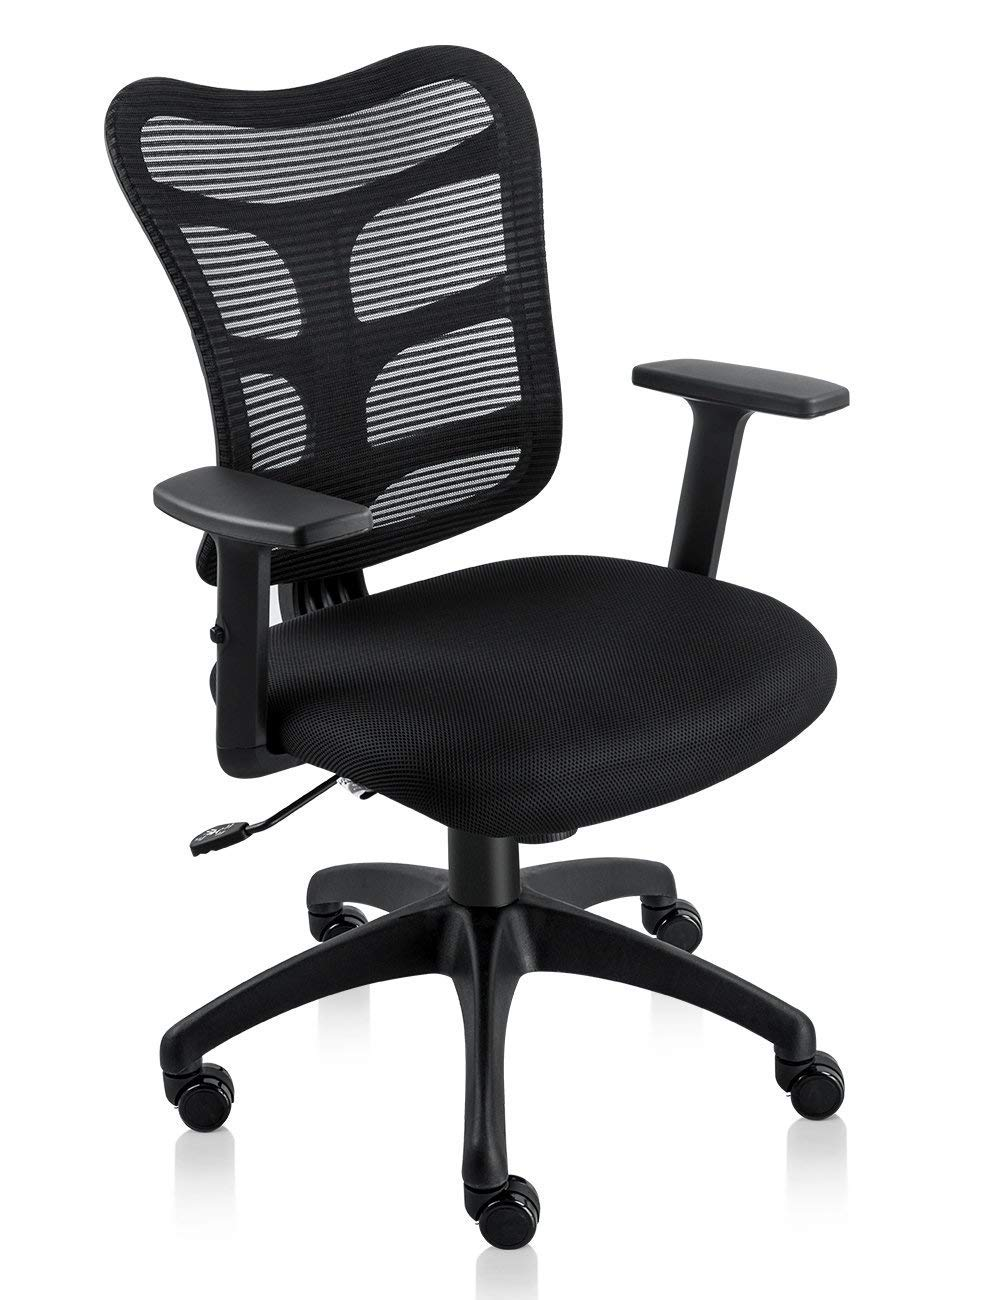 Ergonomic Office Chair Lumbar Support Mesh Chair Computer Desk Task Chair with Armrests by Smugdesk (Image #1)